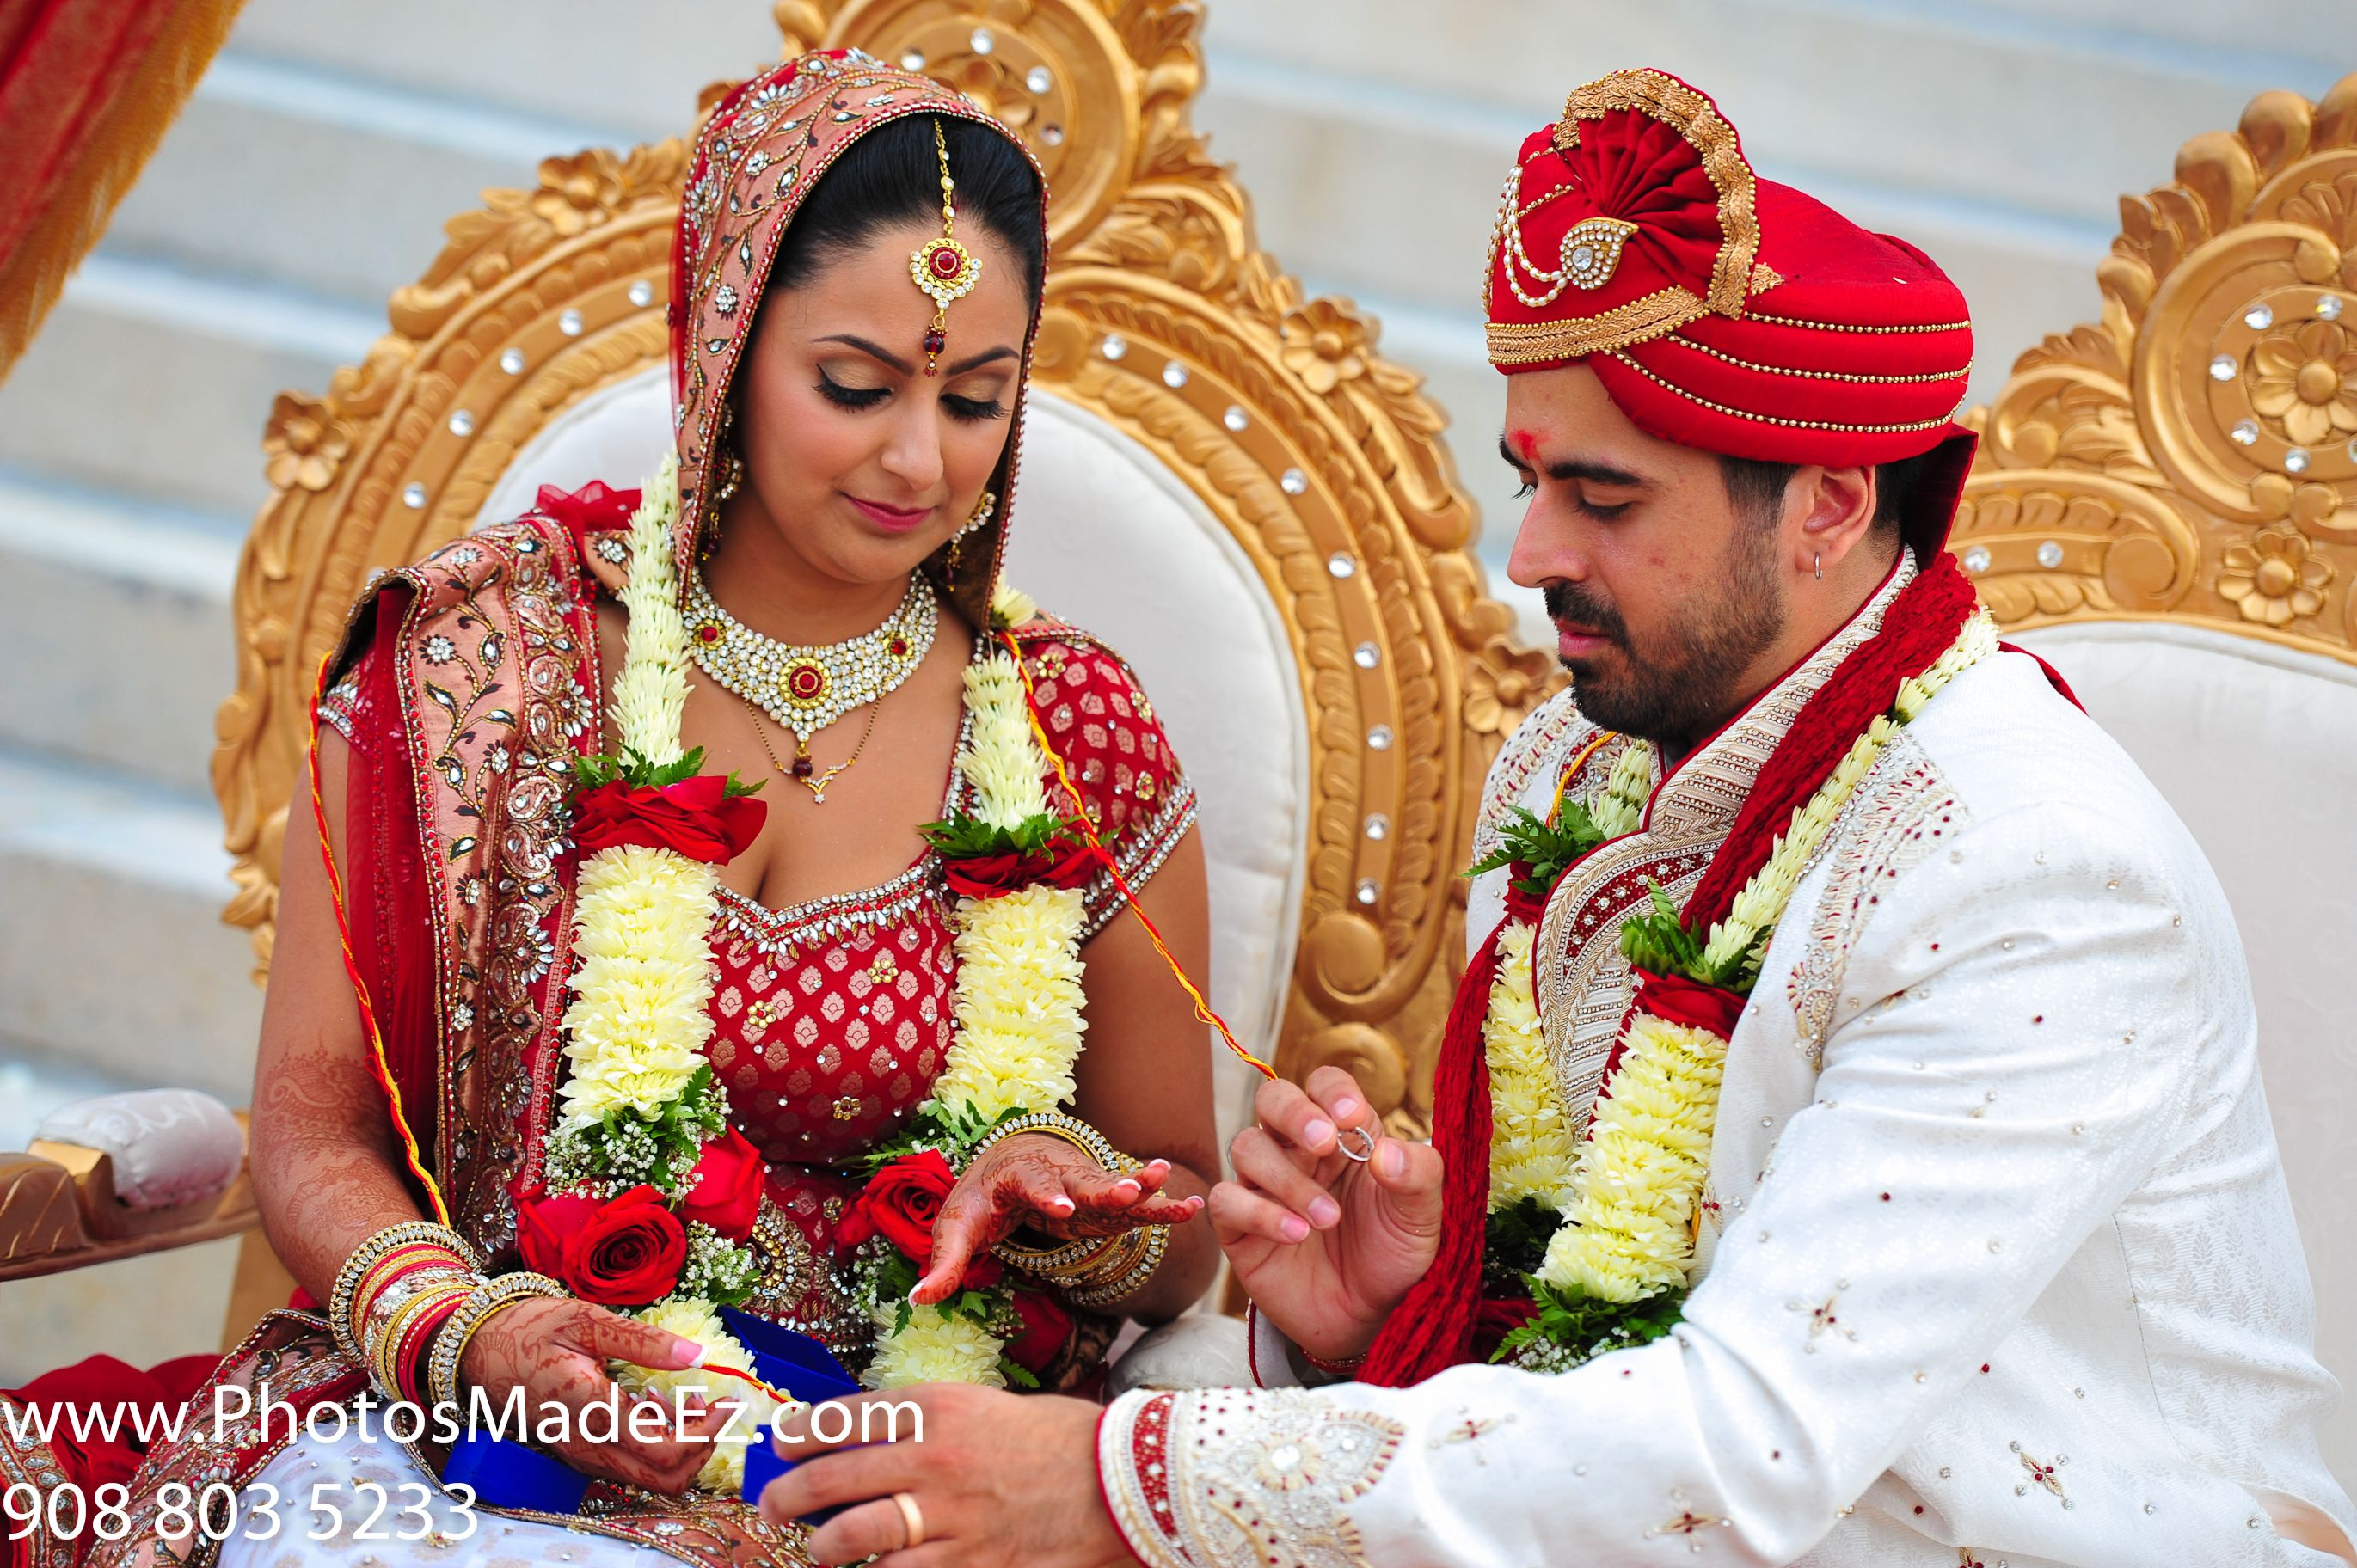 Shefali and Vijay's Gujarati Wedding in Please Touch